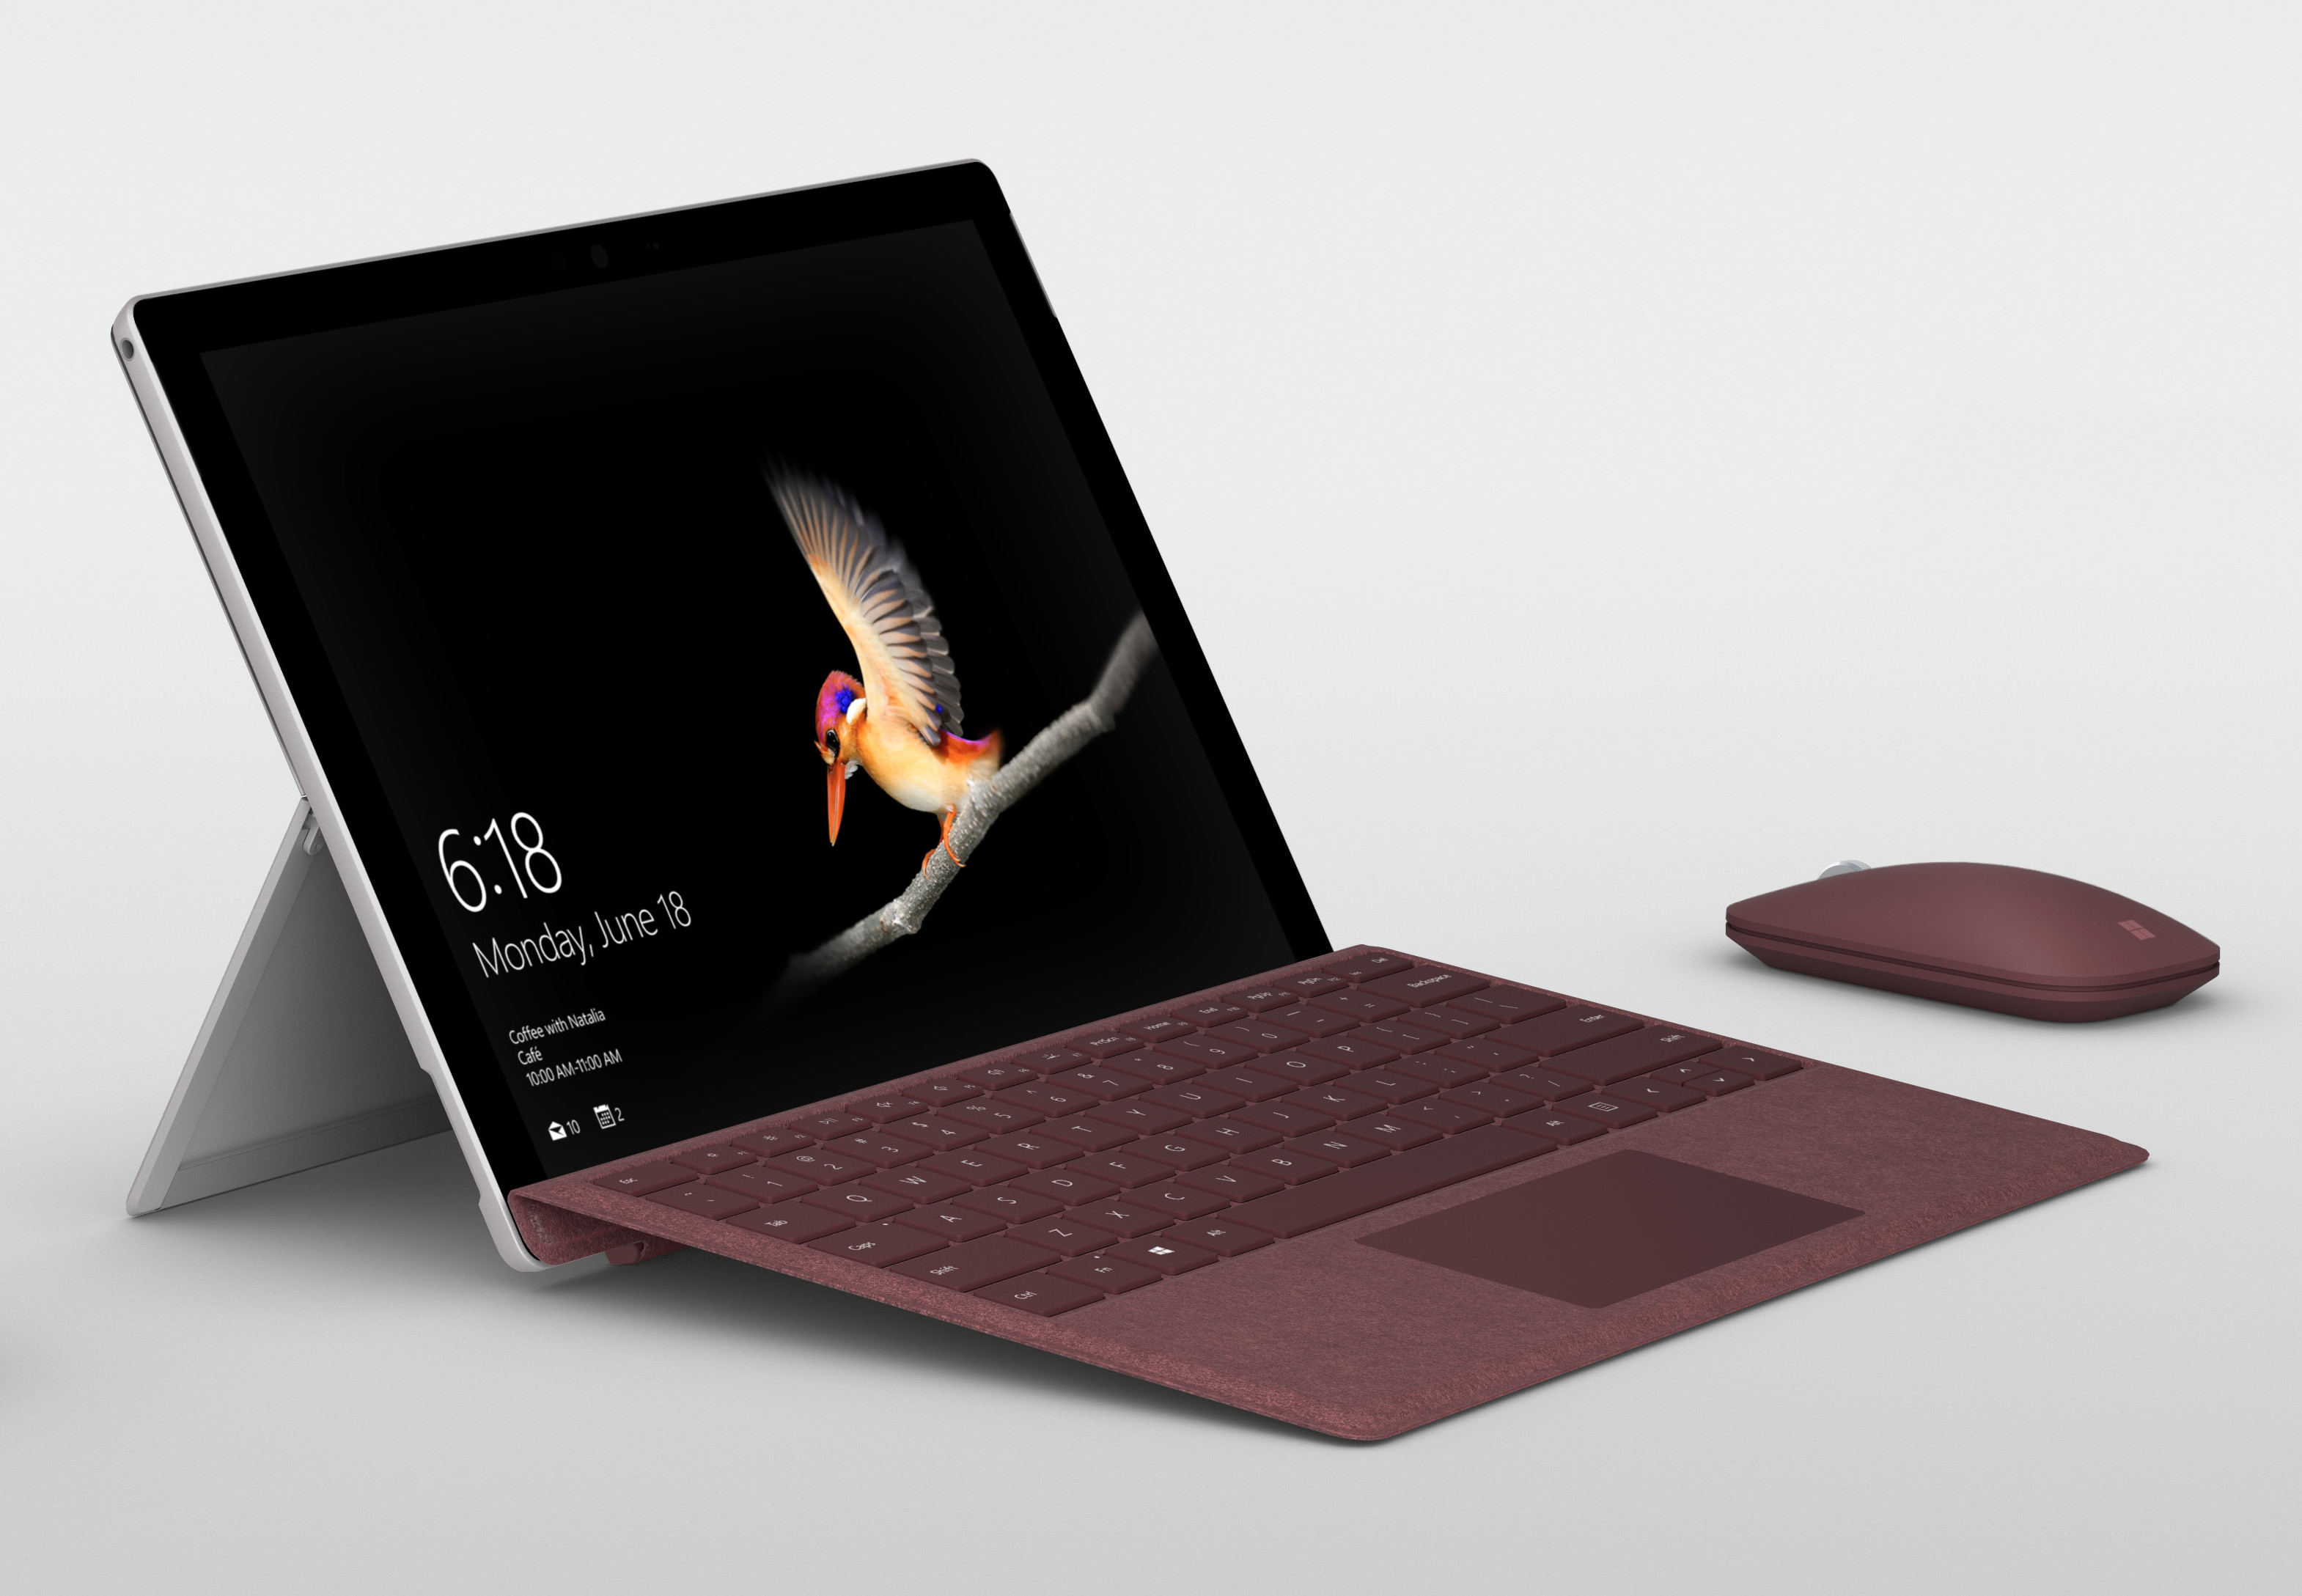 Microsoft Surface Go Tablet Based on Intel Pentium Gold 4415Y